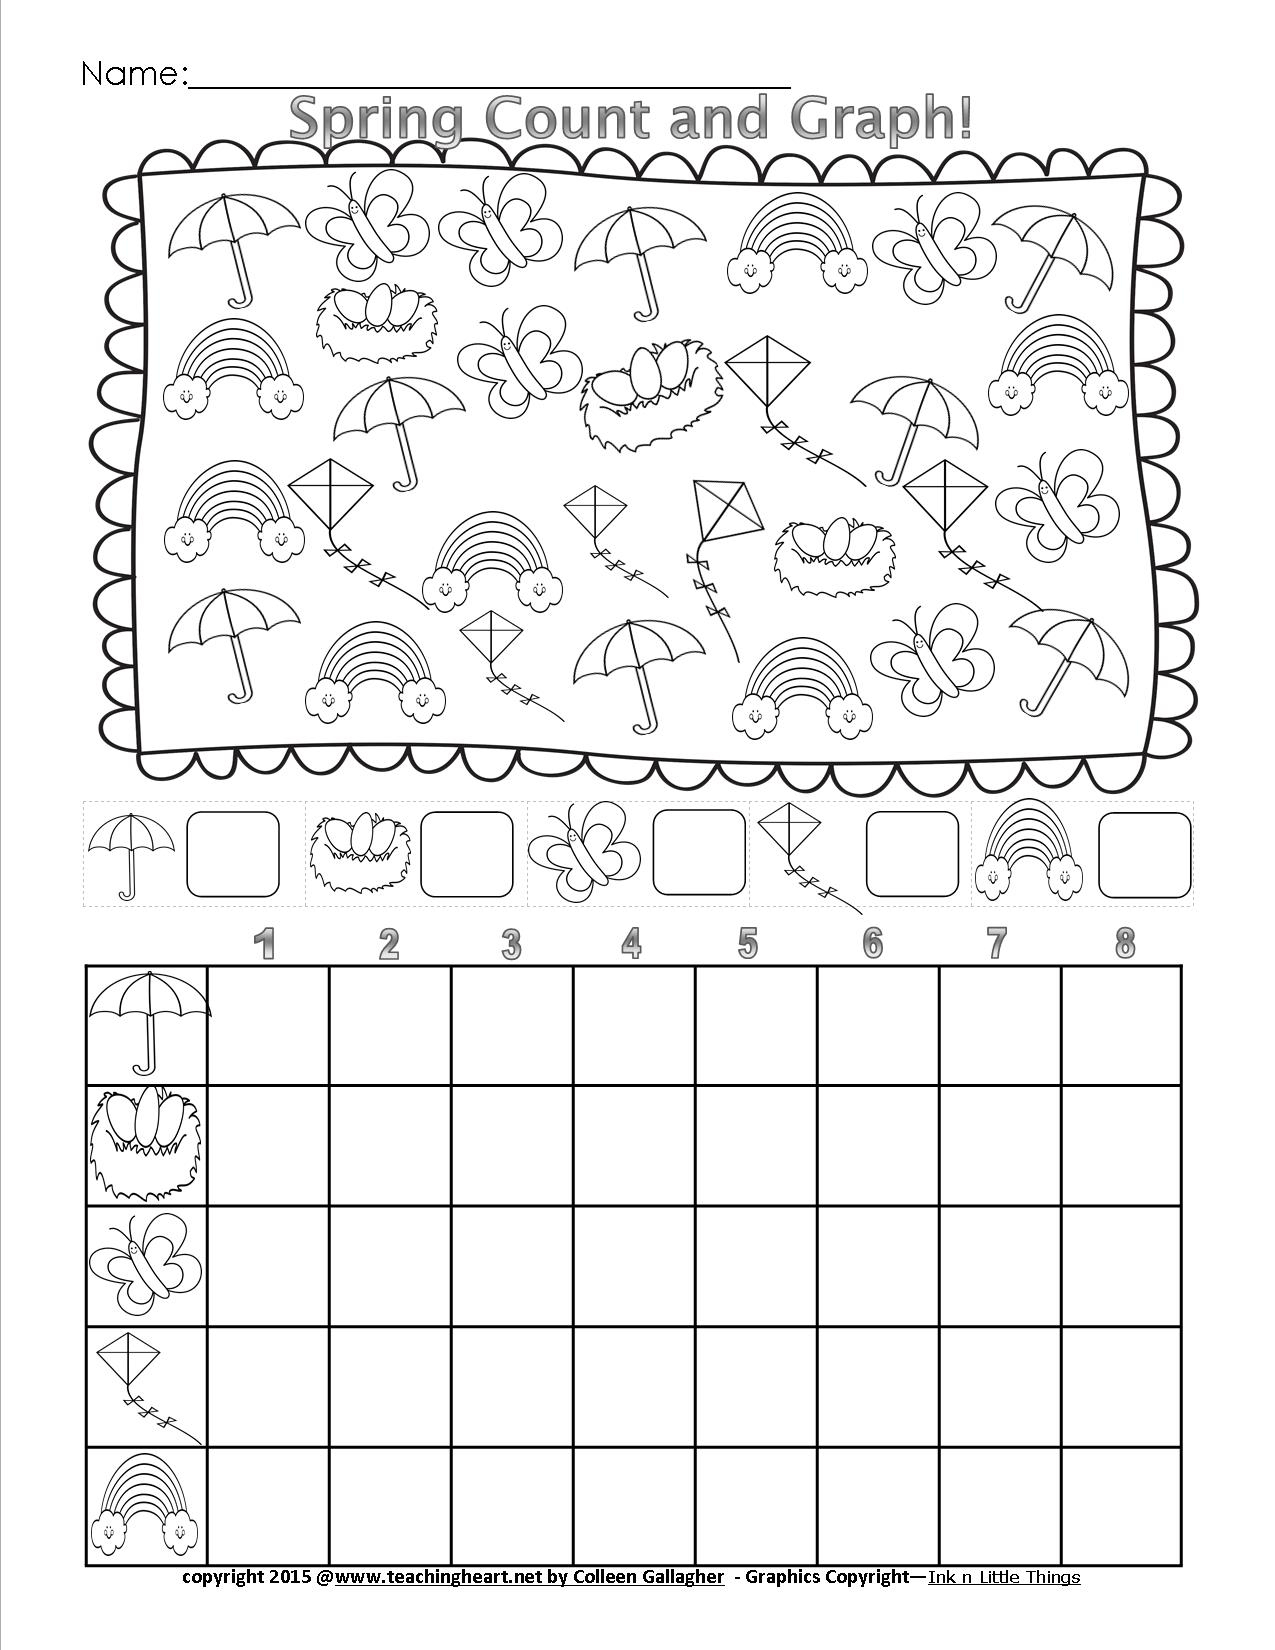 Spring Count And Graph - Free - Teaching Heart Blog Teaching Heart Blog | Free Printable Graphing Worksheets